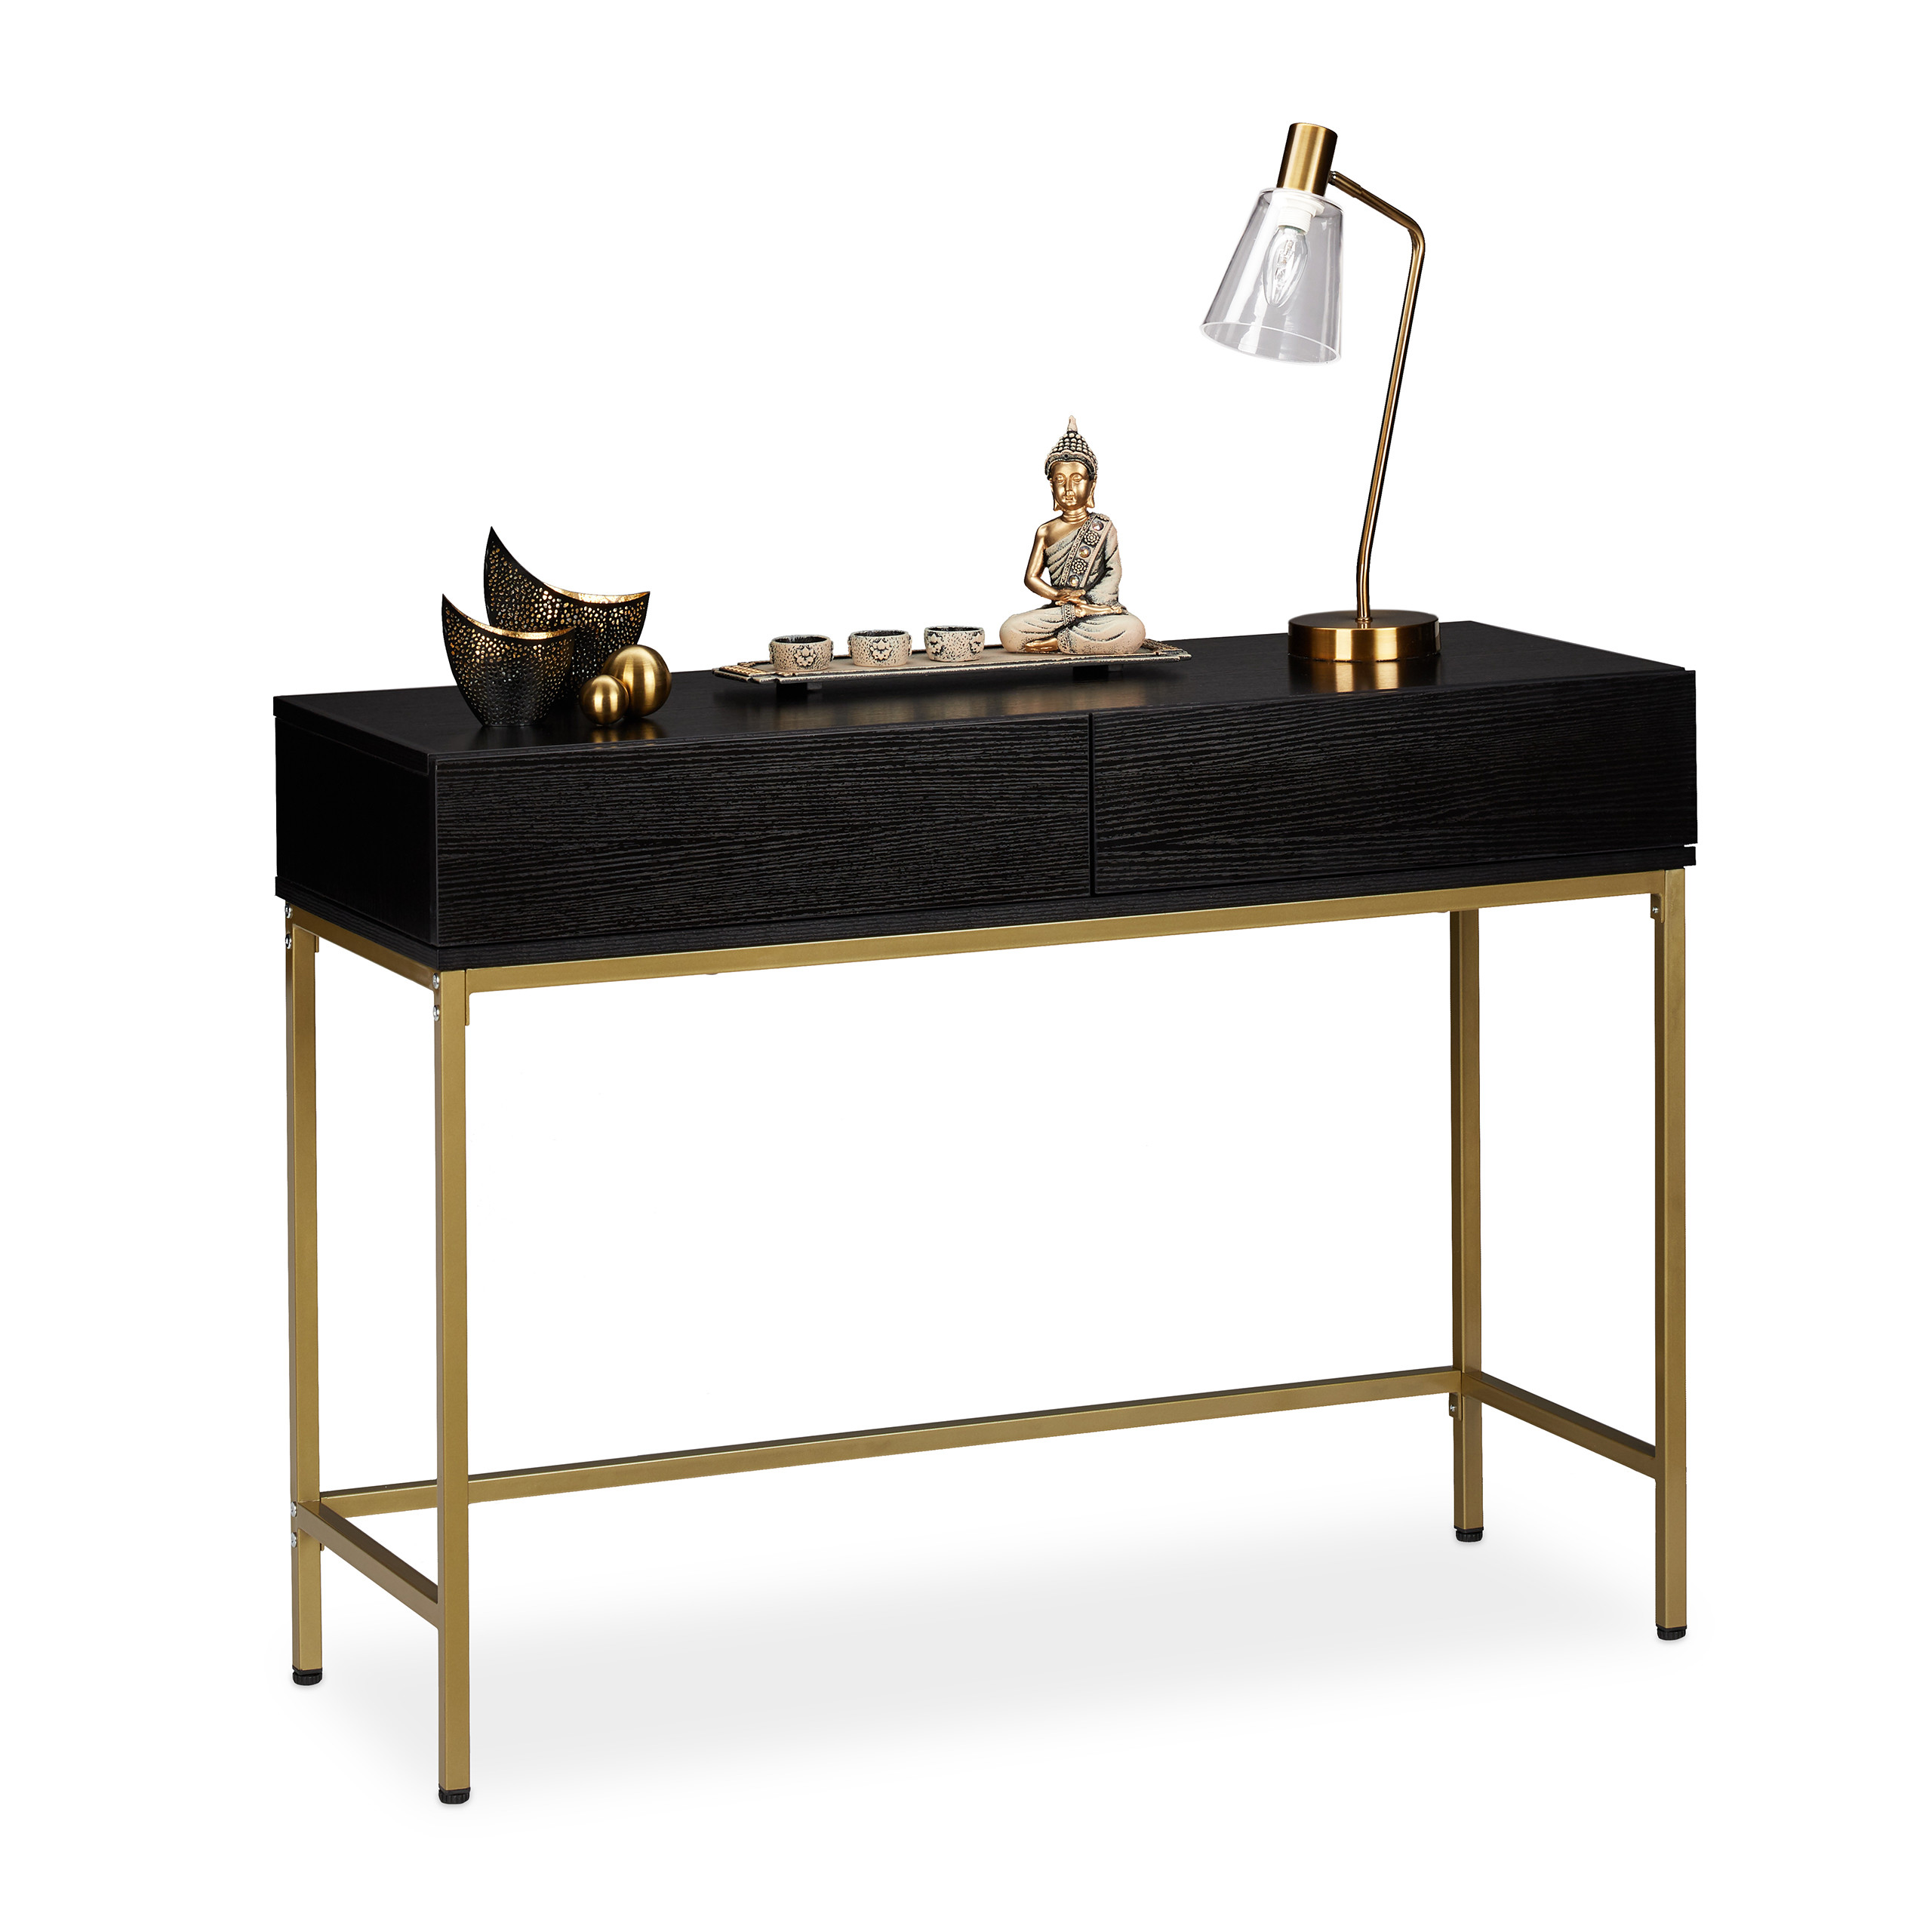 Console Table Black Frame Gold Hallway Table Tray Table